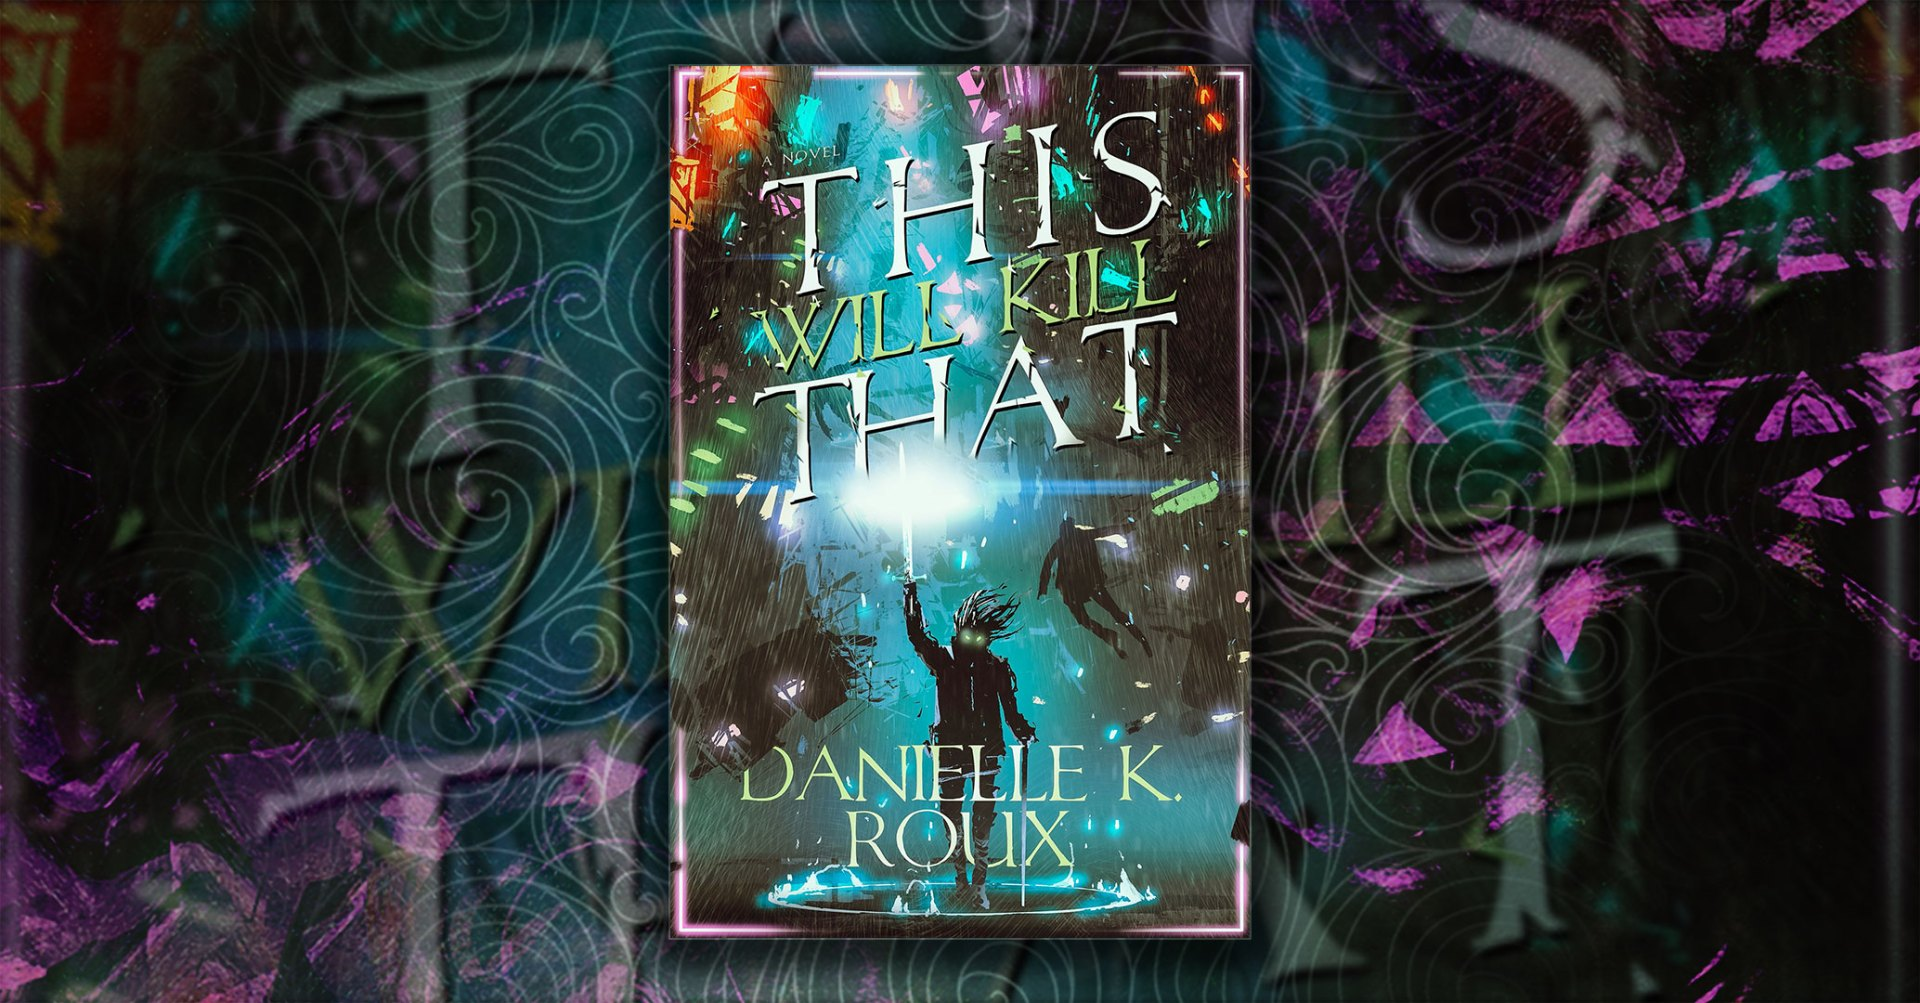 This Will Kill That by Danielle K. Roux